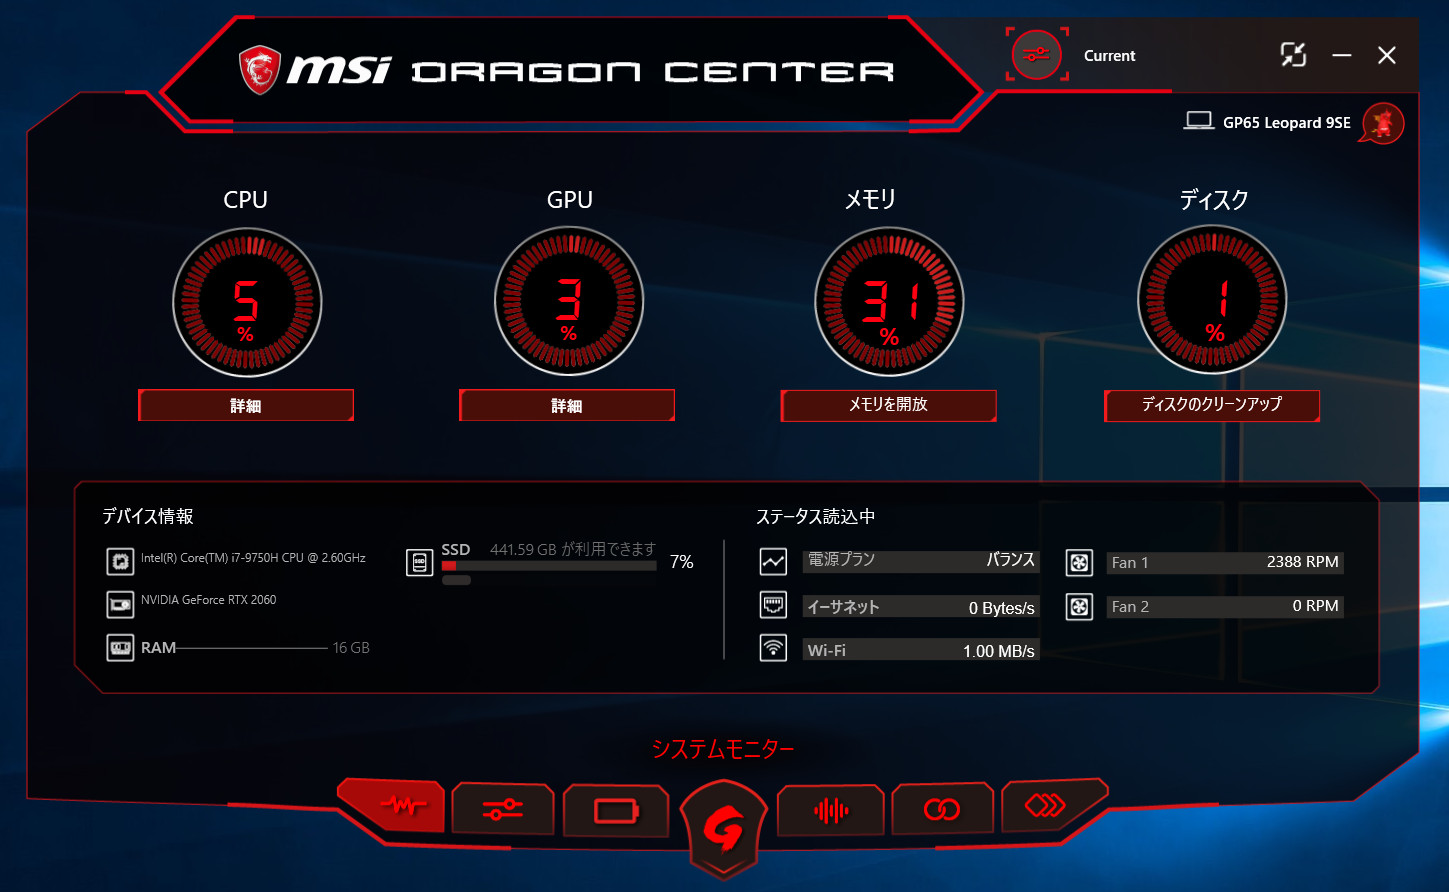 MSI GP65 Leopard Dragon Center